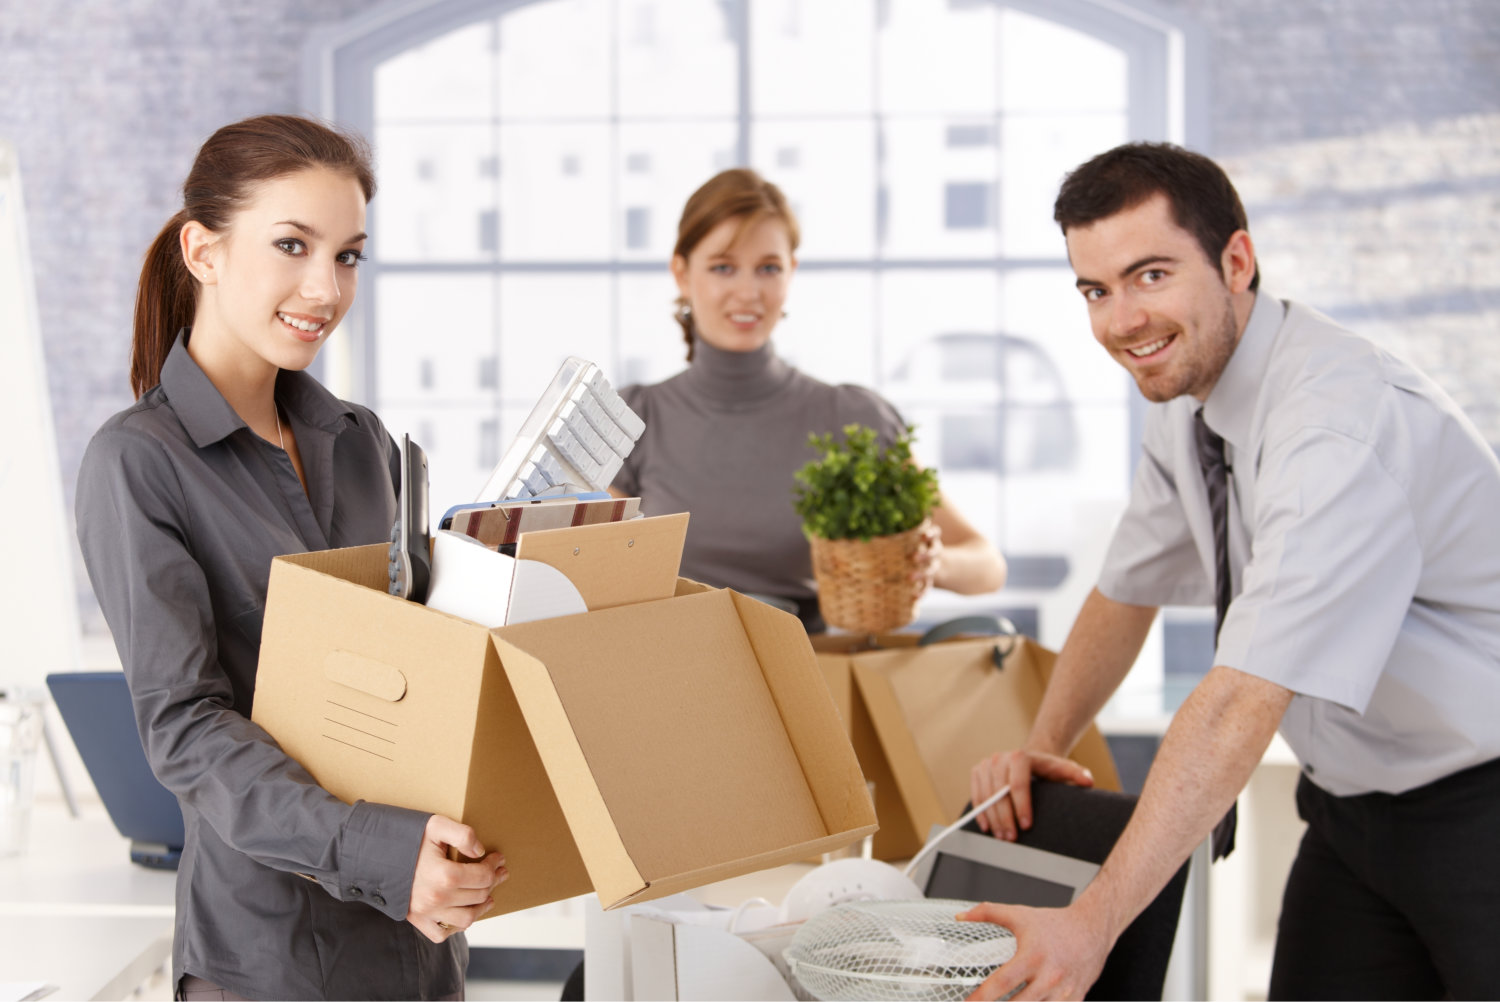 Business removals company Ireland. Business relocation service